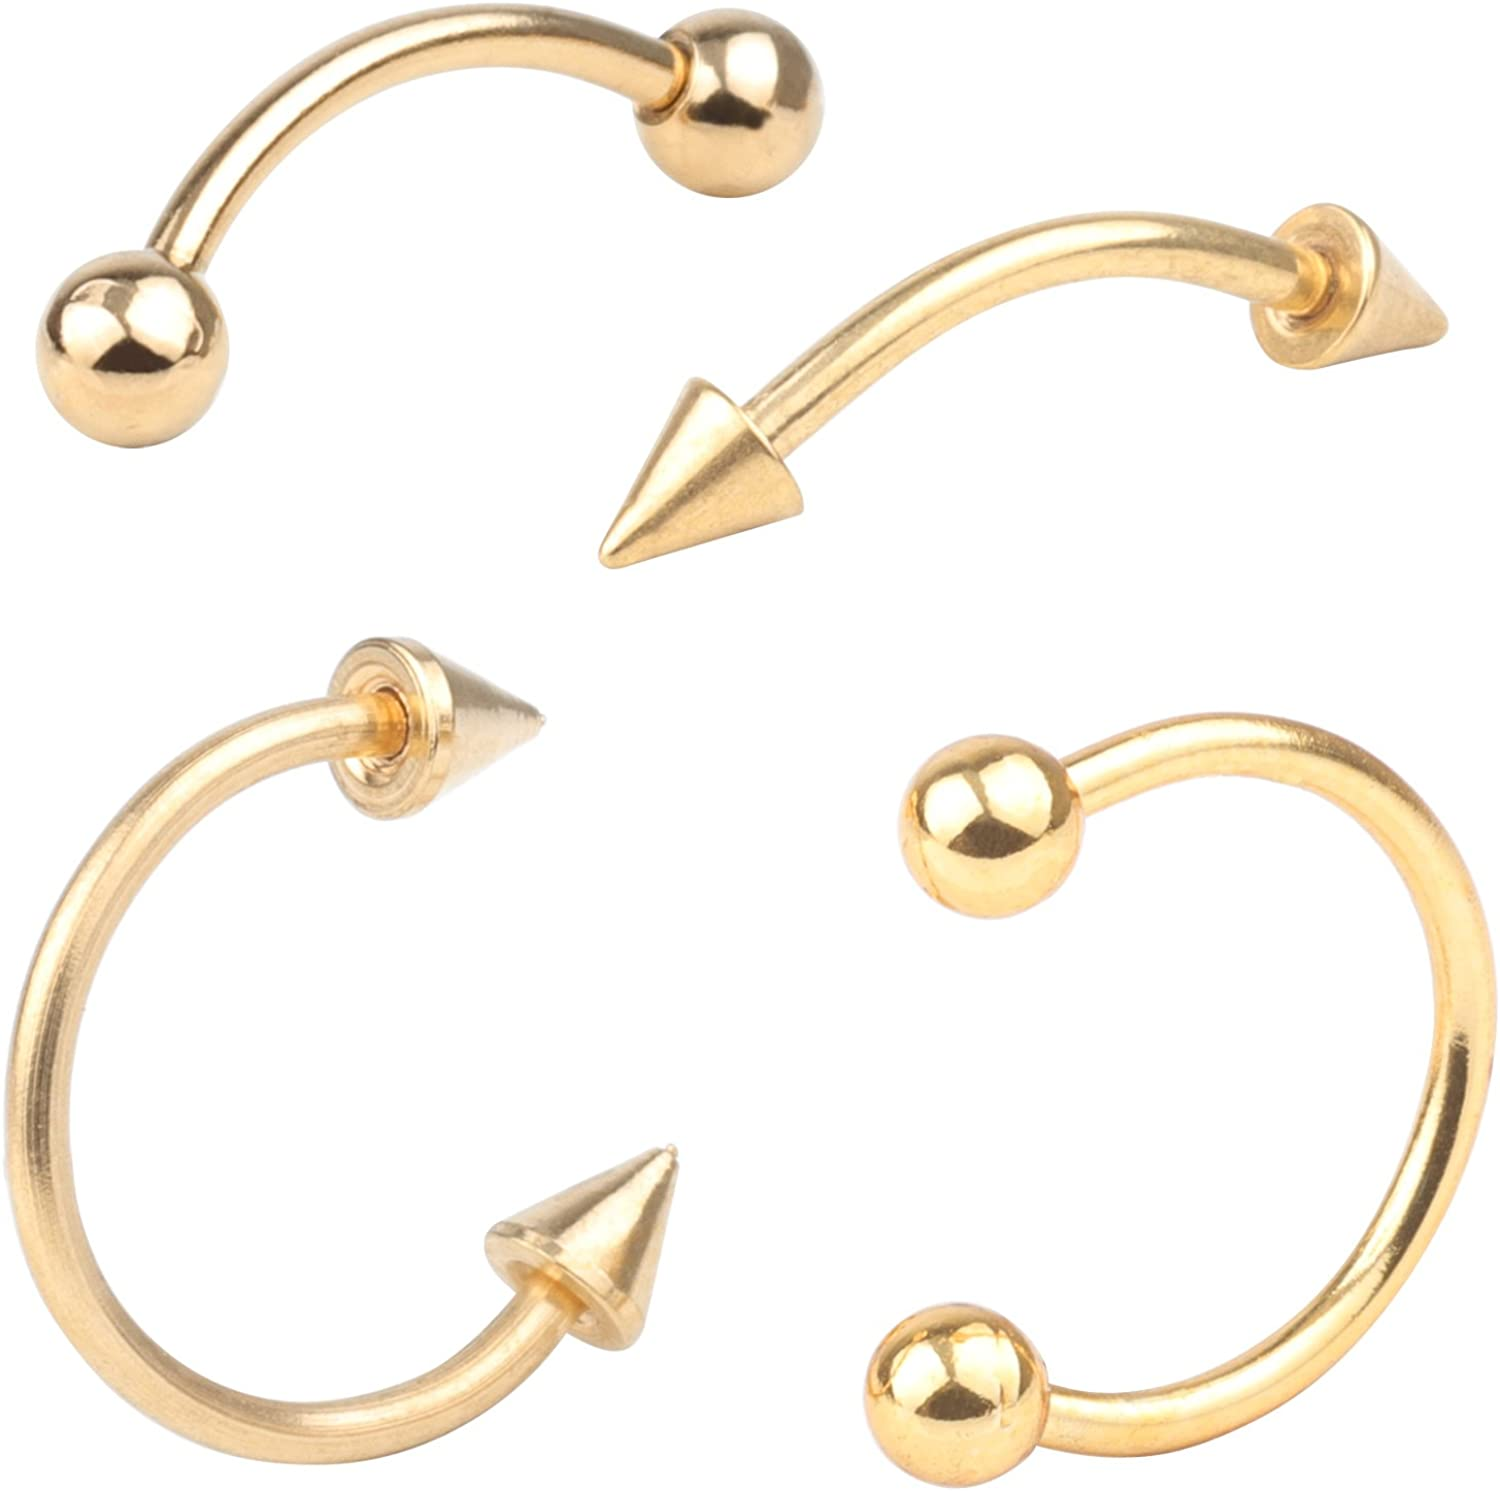 feiyan86 FY 16G 4pcs Surgical Steel Body Jewelry Piercing Eyebrow Belly Rings Set Nose Horseshoe Tragus Lip Piercing 3mm Ball Spike 10mm